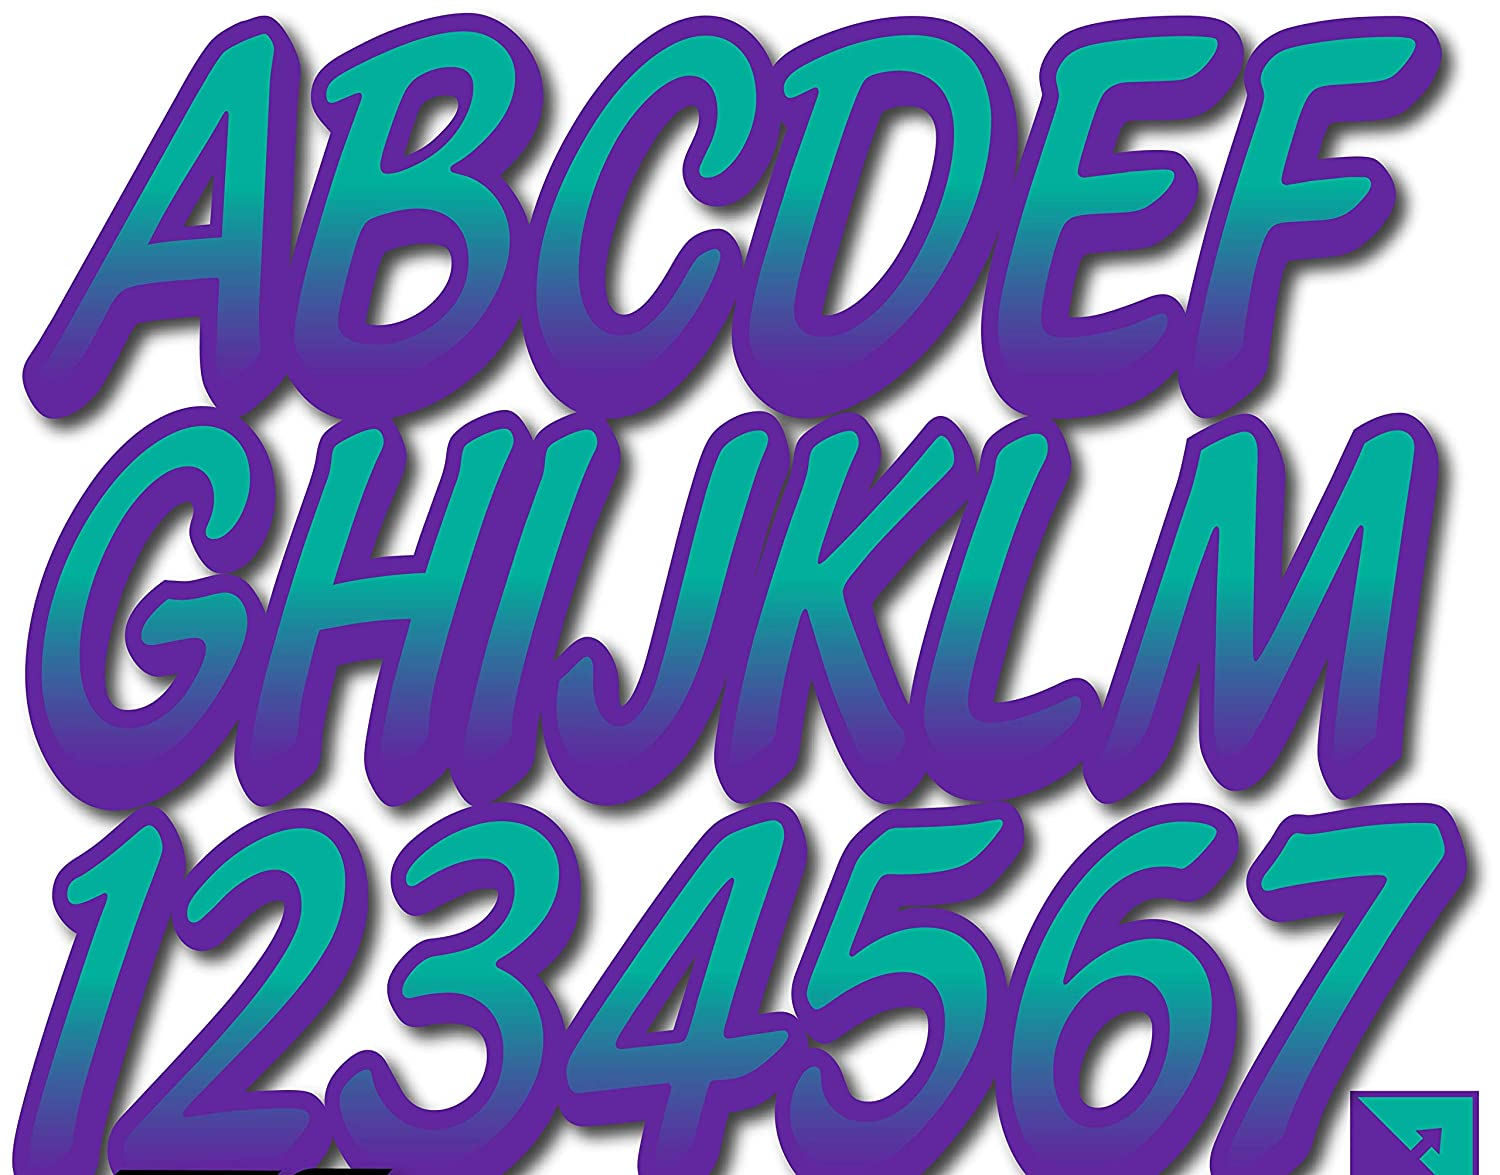 Stiffie Whipline Teal//Purple 3 Alpha-Numeric Registration Identification Numbers Stickers Decals for Boats /& Personal Watercraft